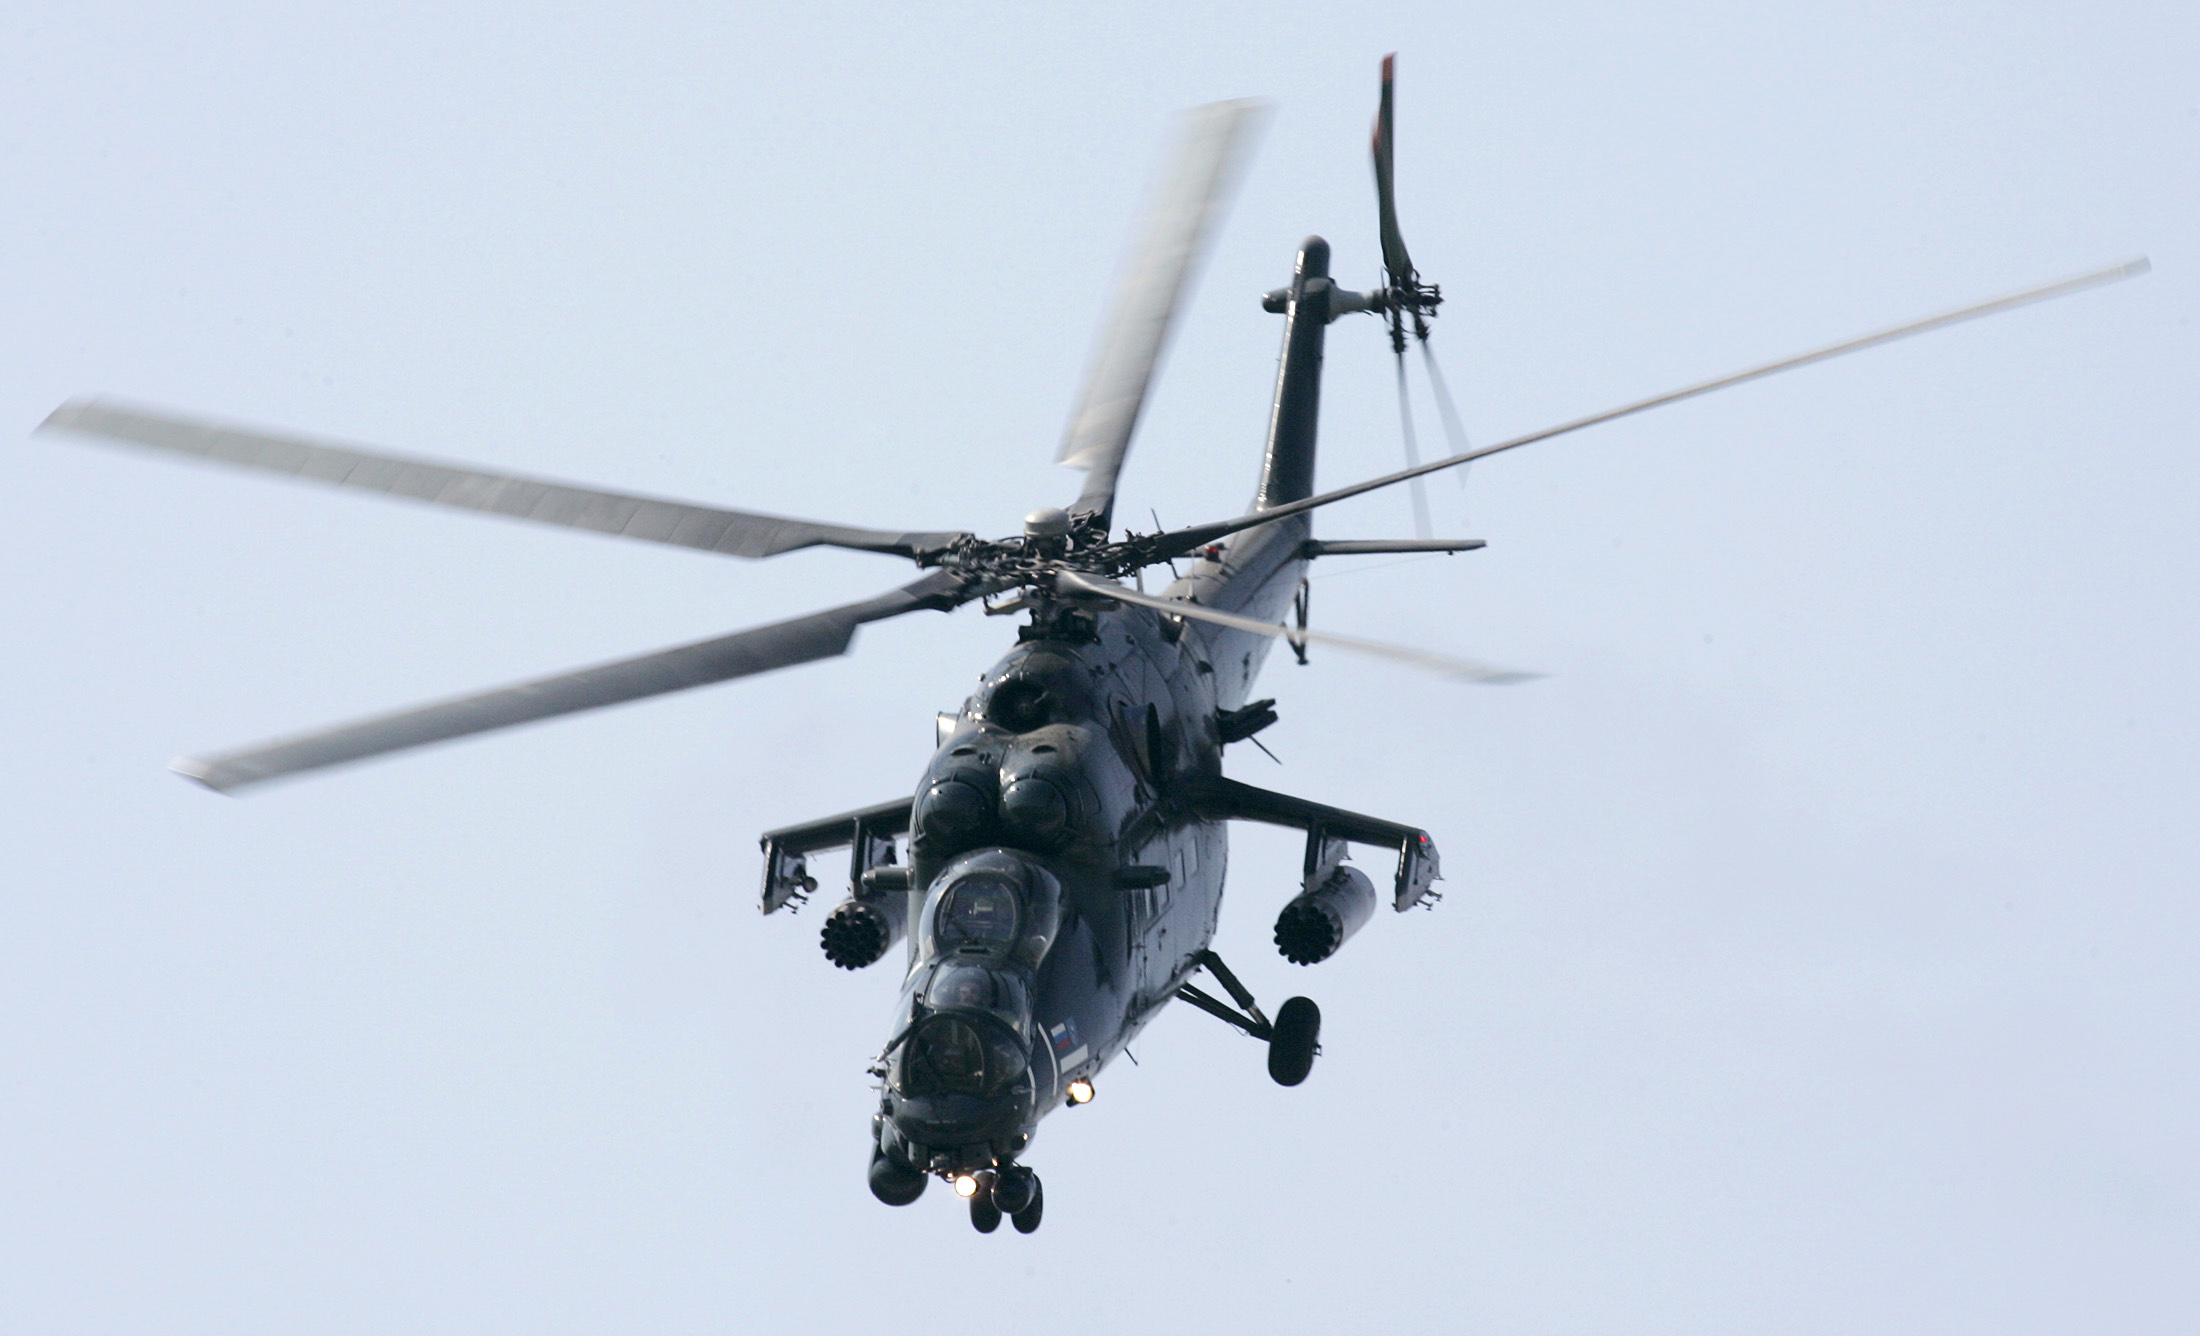 FILE - A Russian military MI-35M helicopter performs during an air show in Zhukovsky, outside Moscow, Aug. 23, 2007. Russia has sold the combat helicopters to Pakistan.